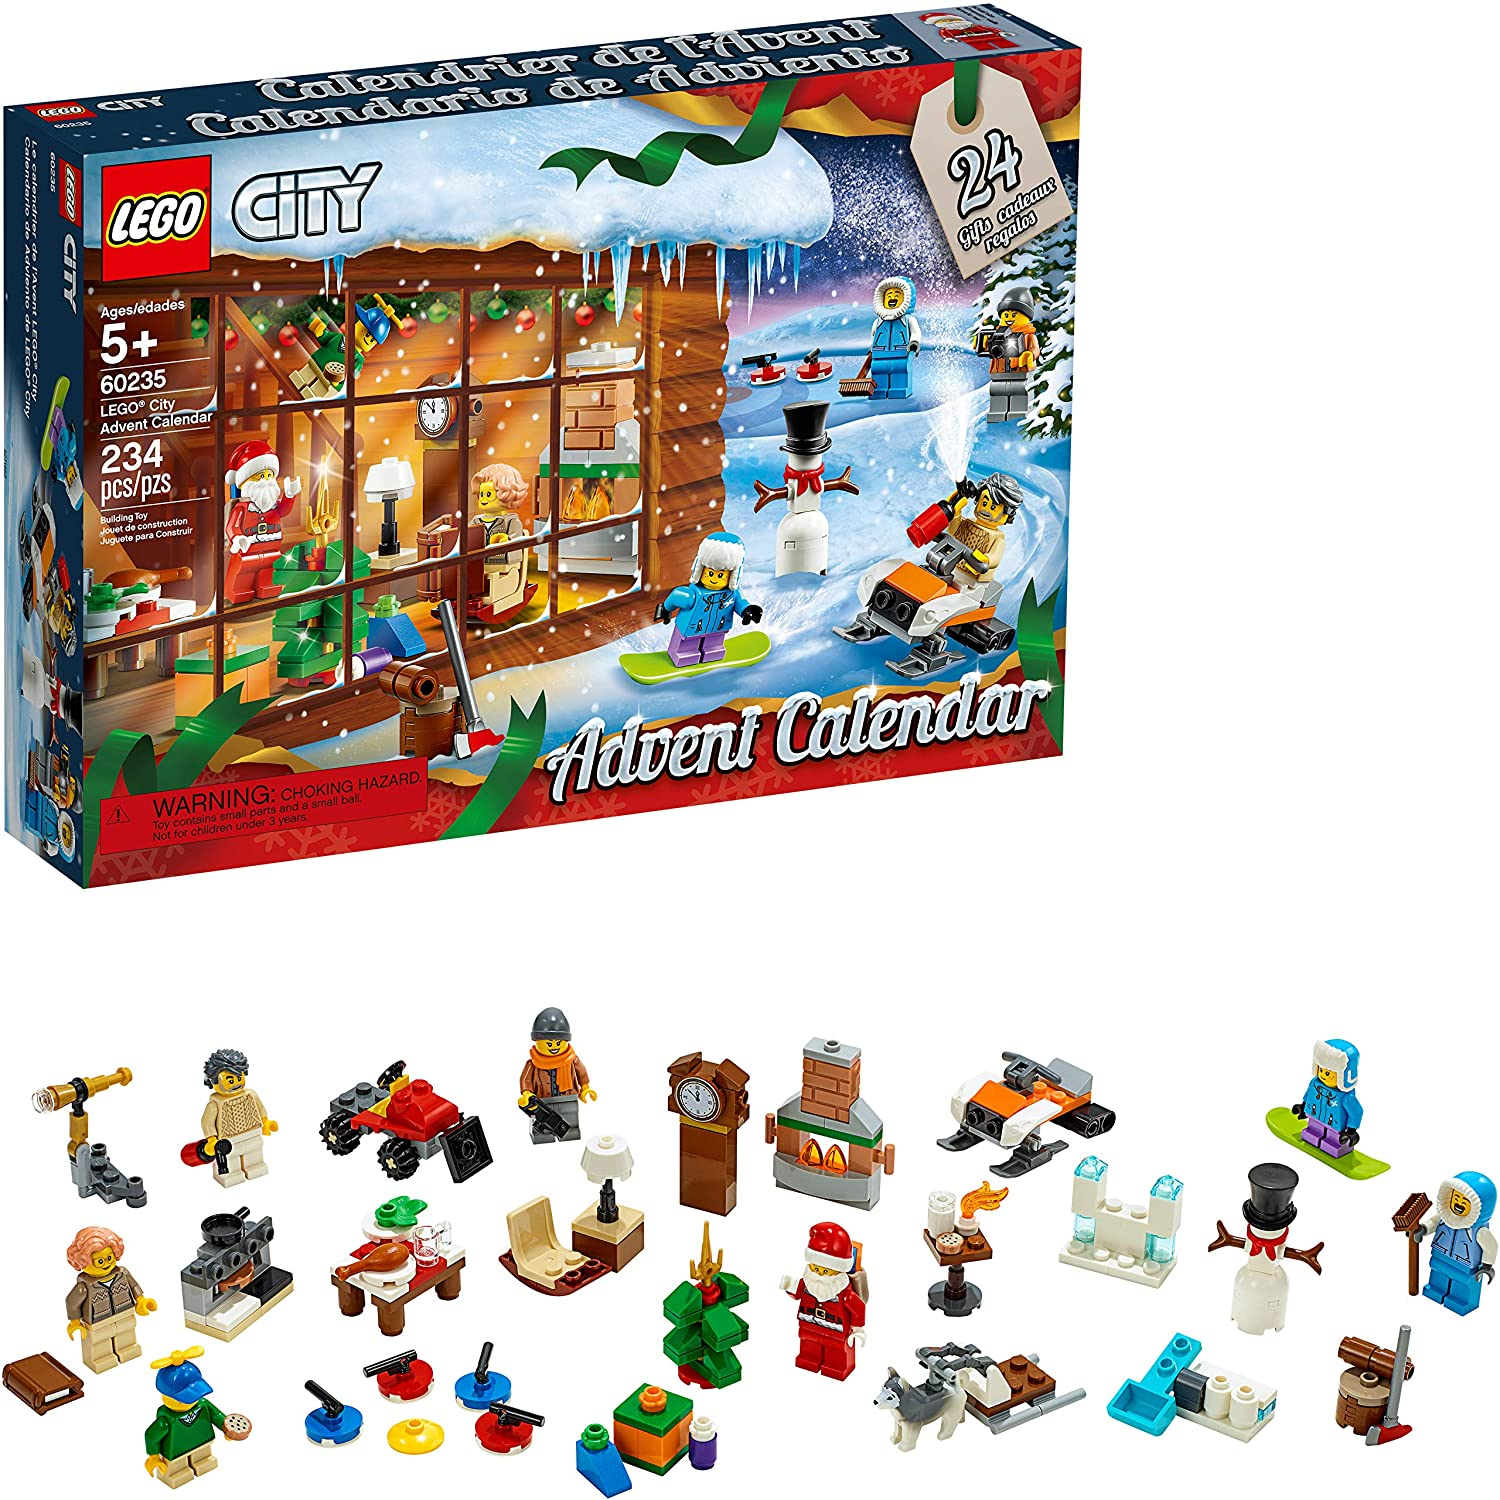 LEGO City Advent Calendar 60235 Building Kit (234 Pieces)